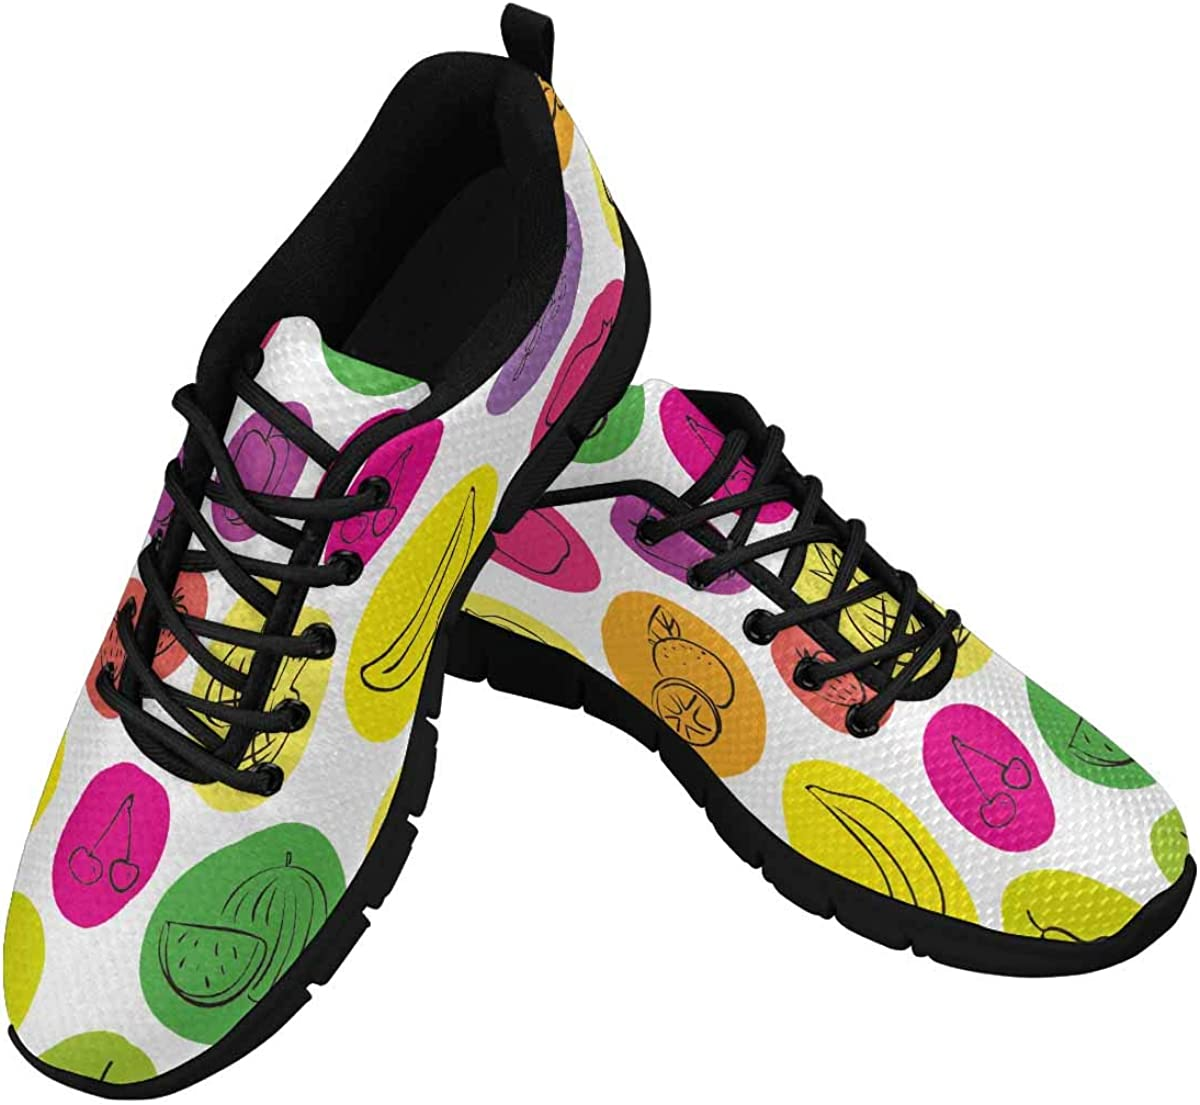 INTERESTPRINT Hand Drawn Fruits on Colorful Dots Women's Athletic Walking Shoes Comfort Mesh Non Slip